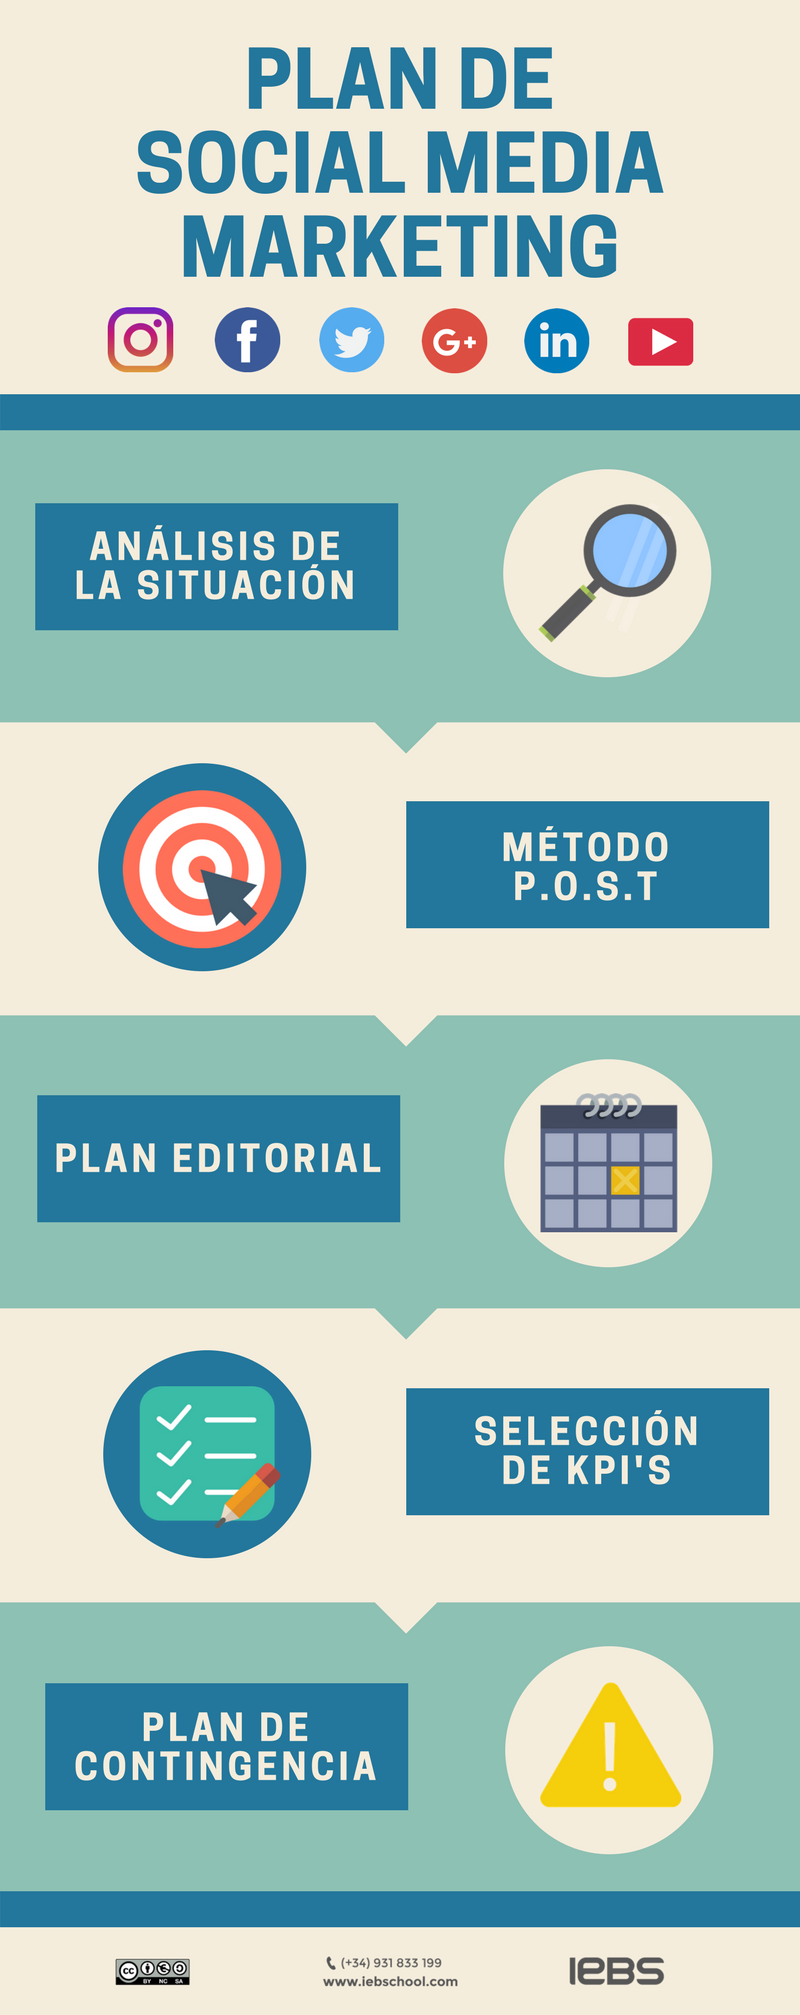 Plan de Social Media Marketing